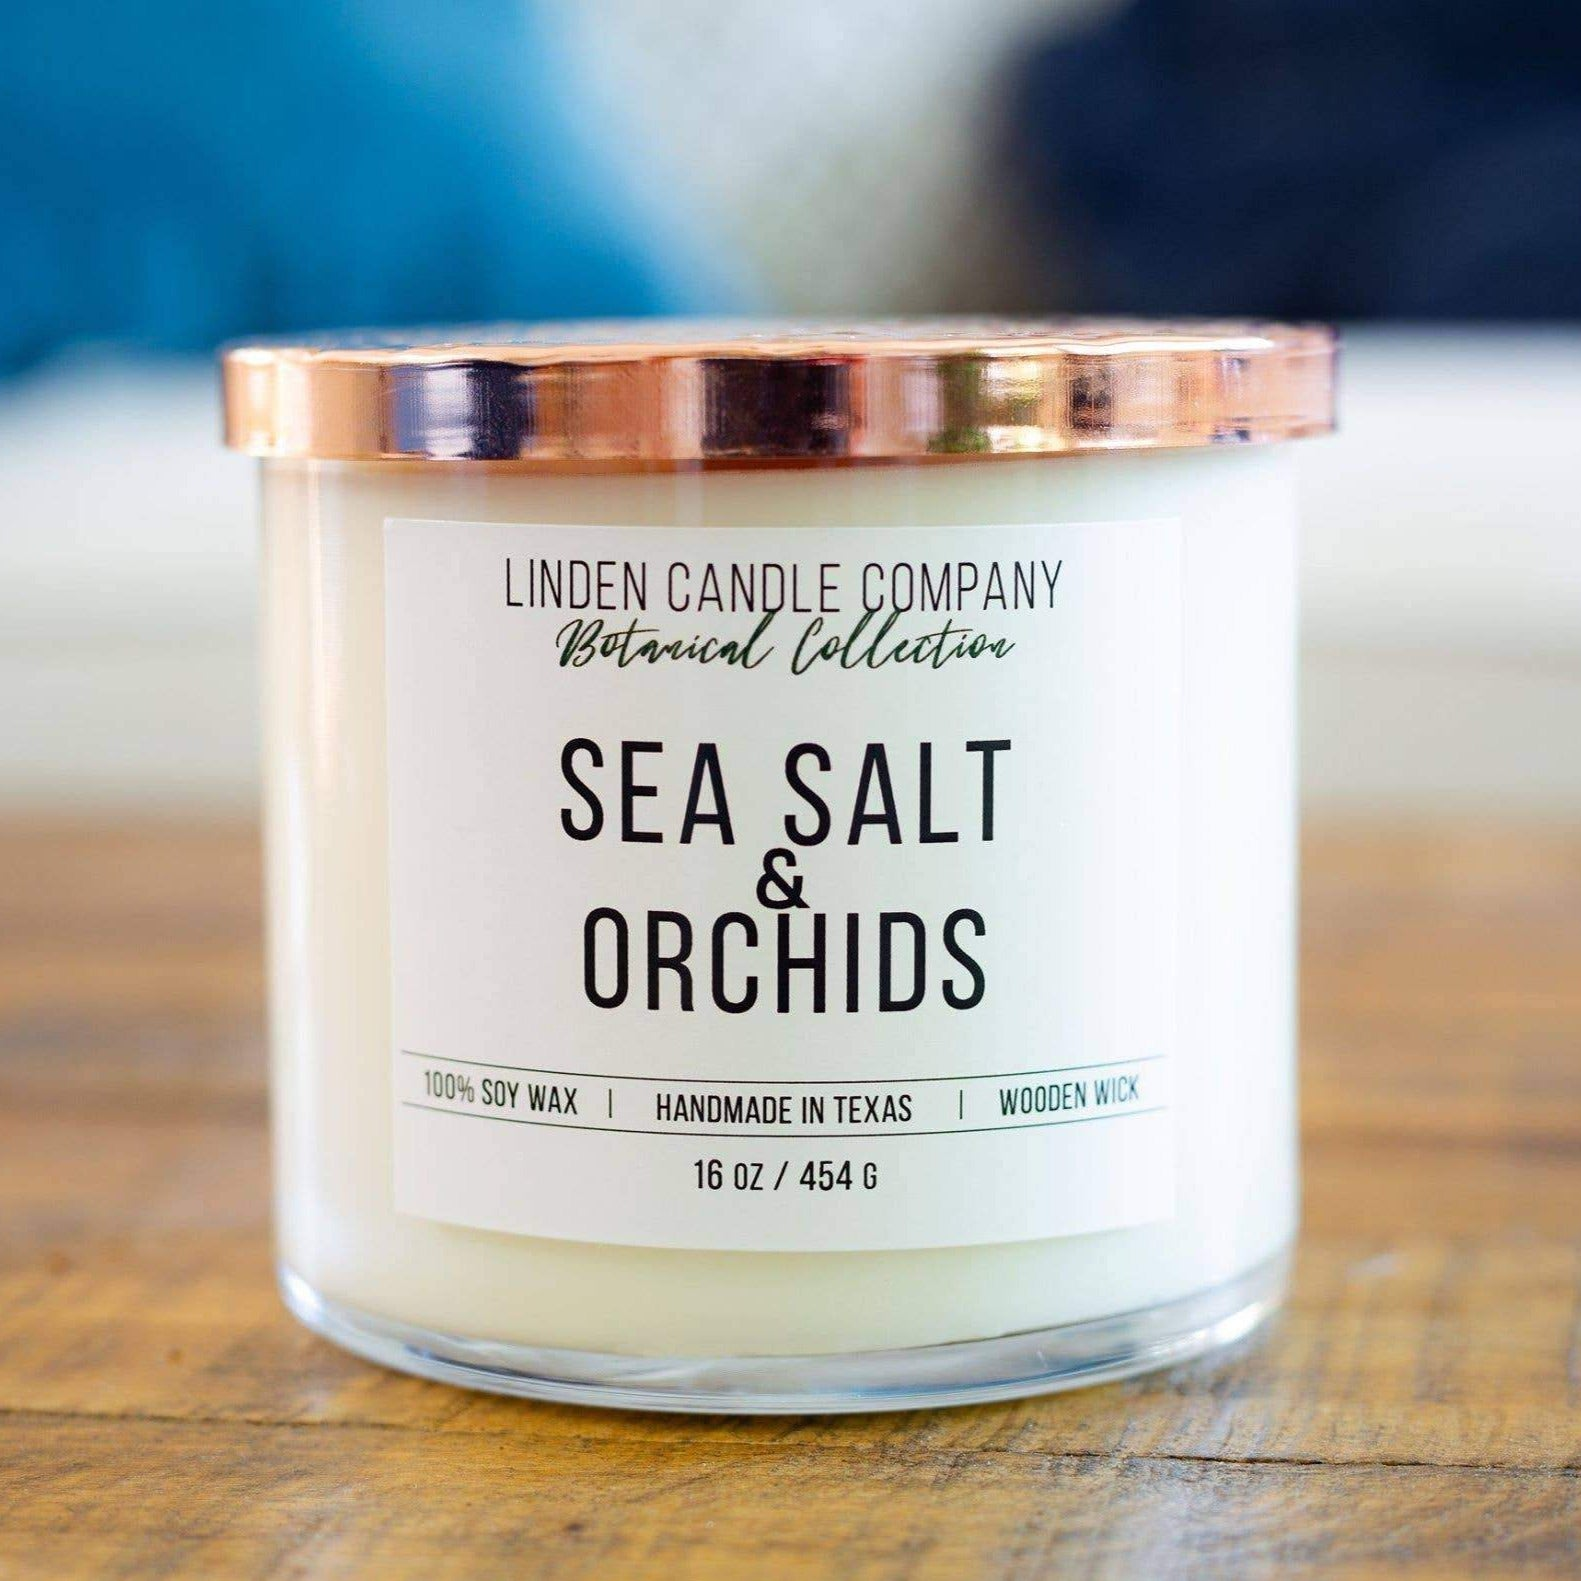 Linden Candle 16oz Sea Salt & Orchids